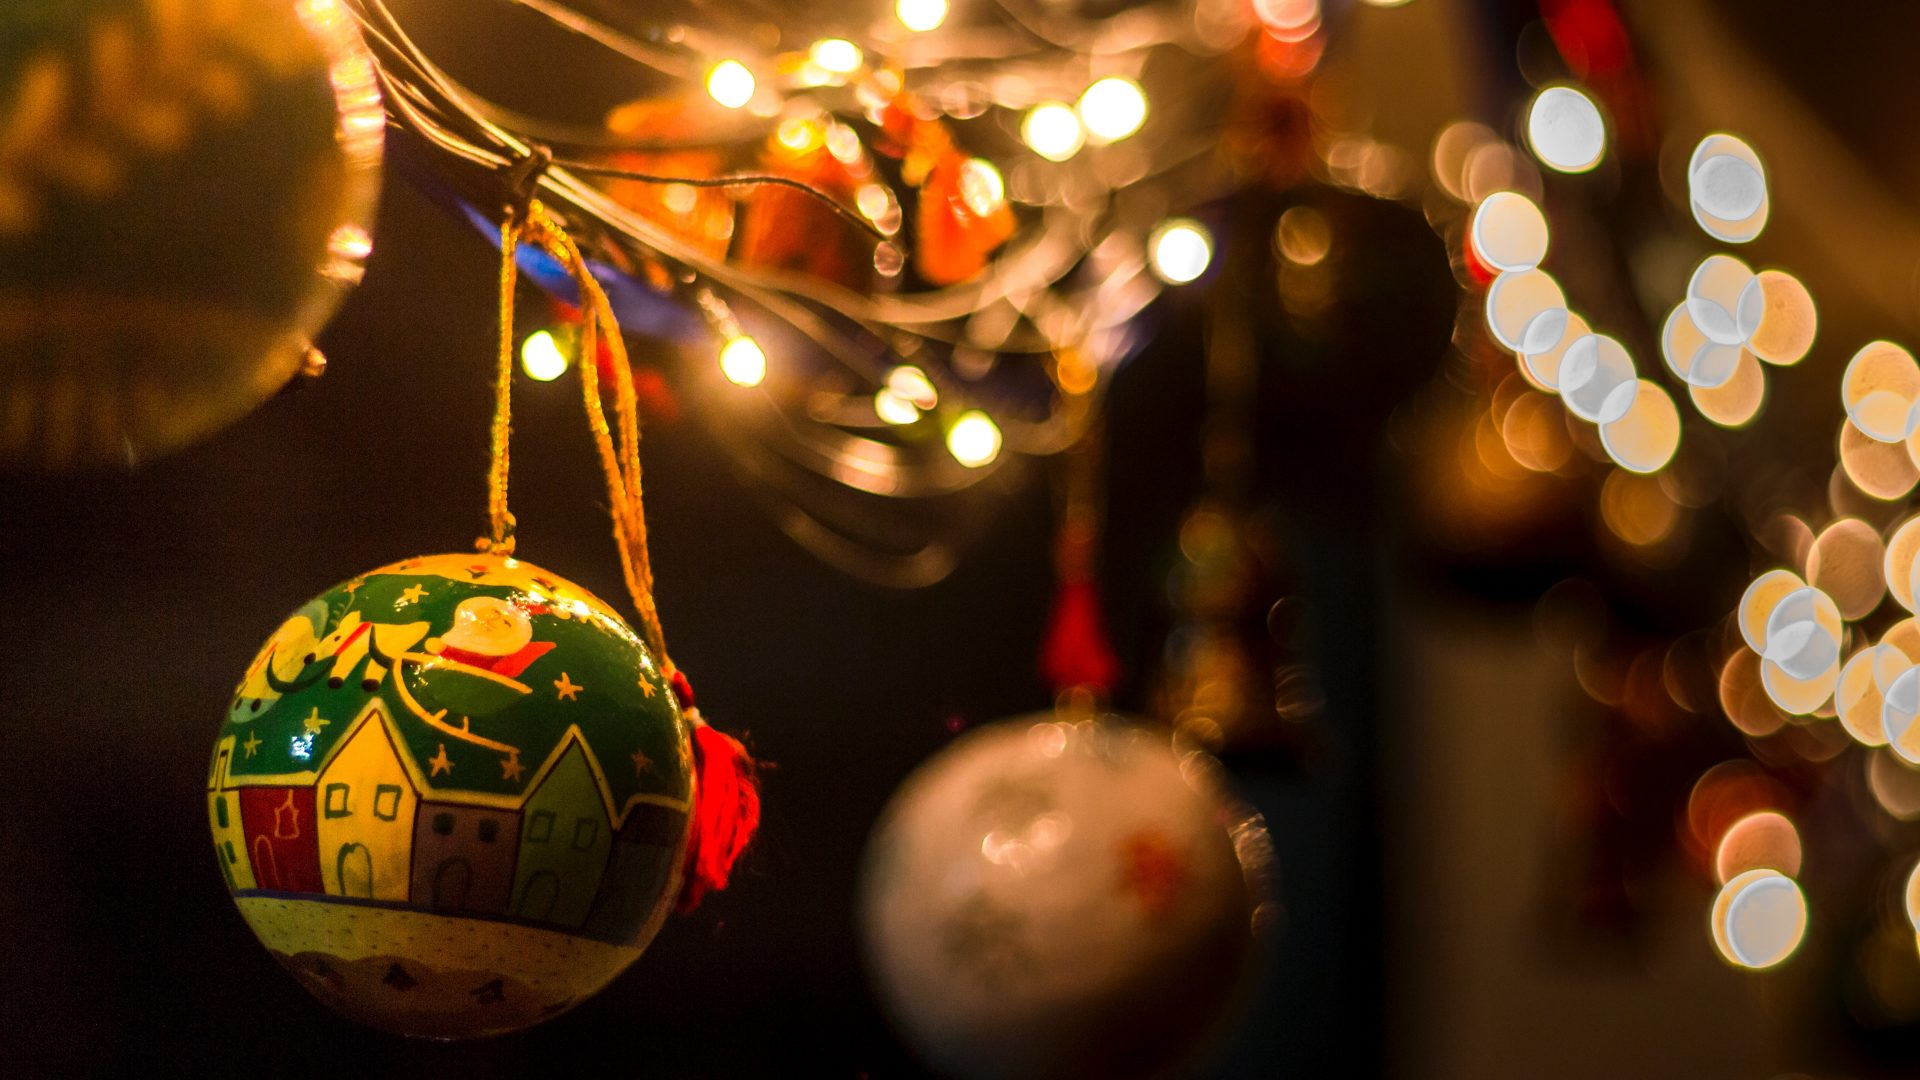 selective focus photo of Christmas bauble